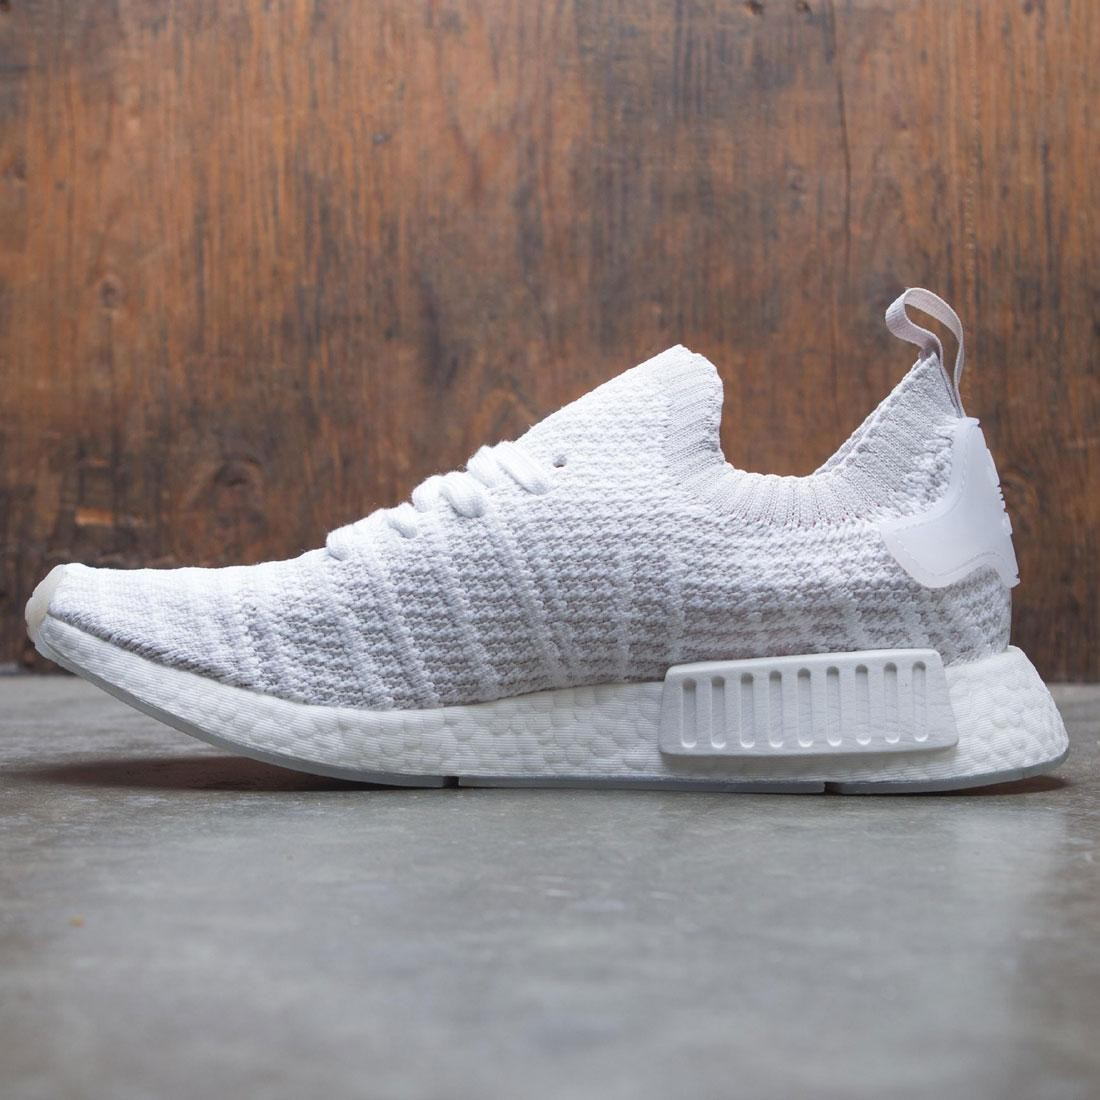 timeless design 2ae1e 3197e Adidas Men NMD R1 STLT Primeknit (white / grey one / solar pink)